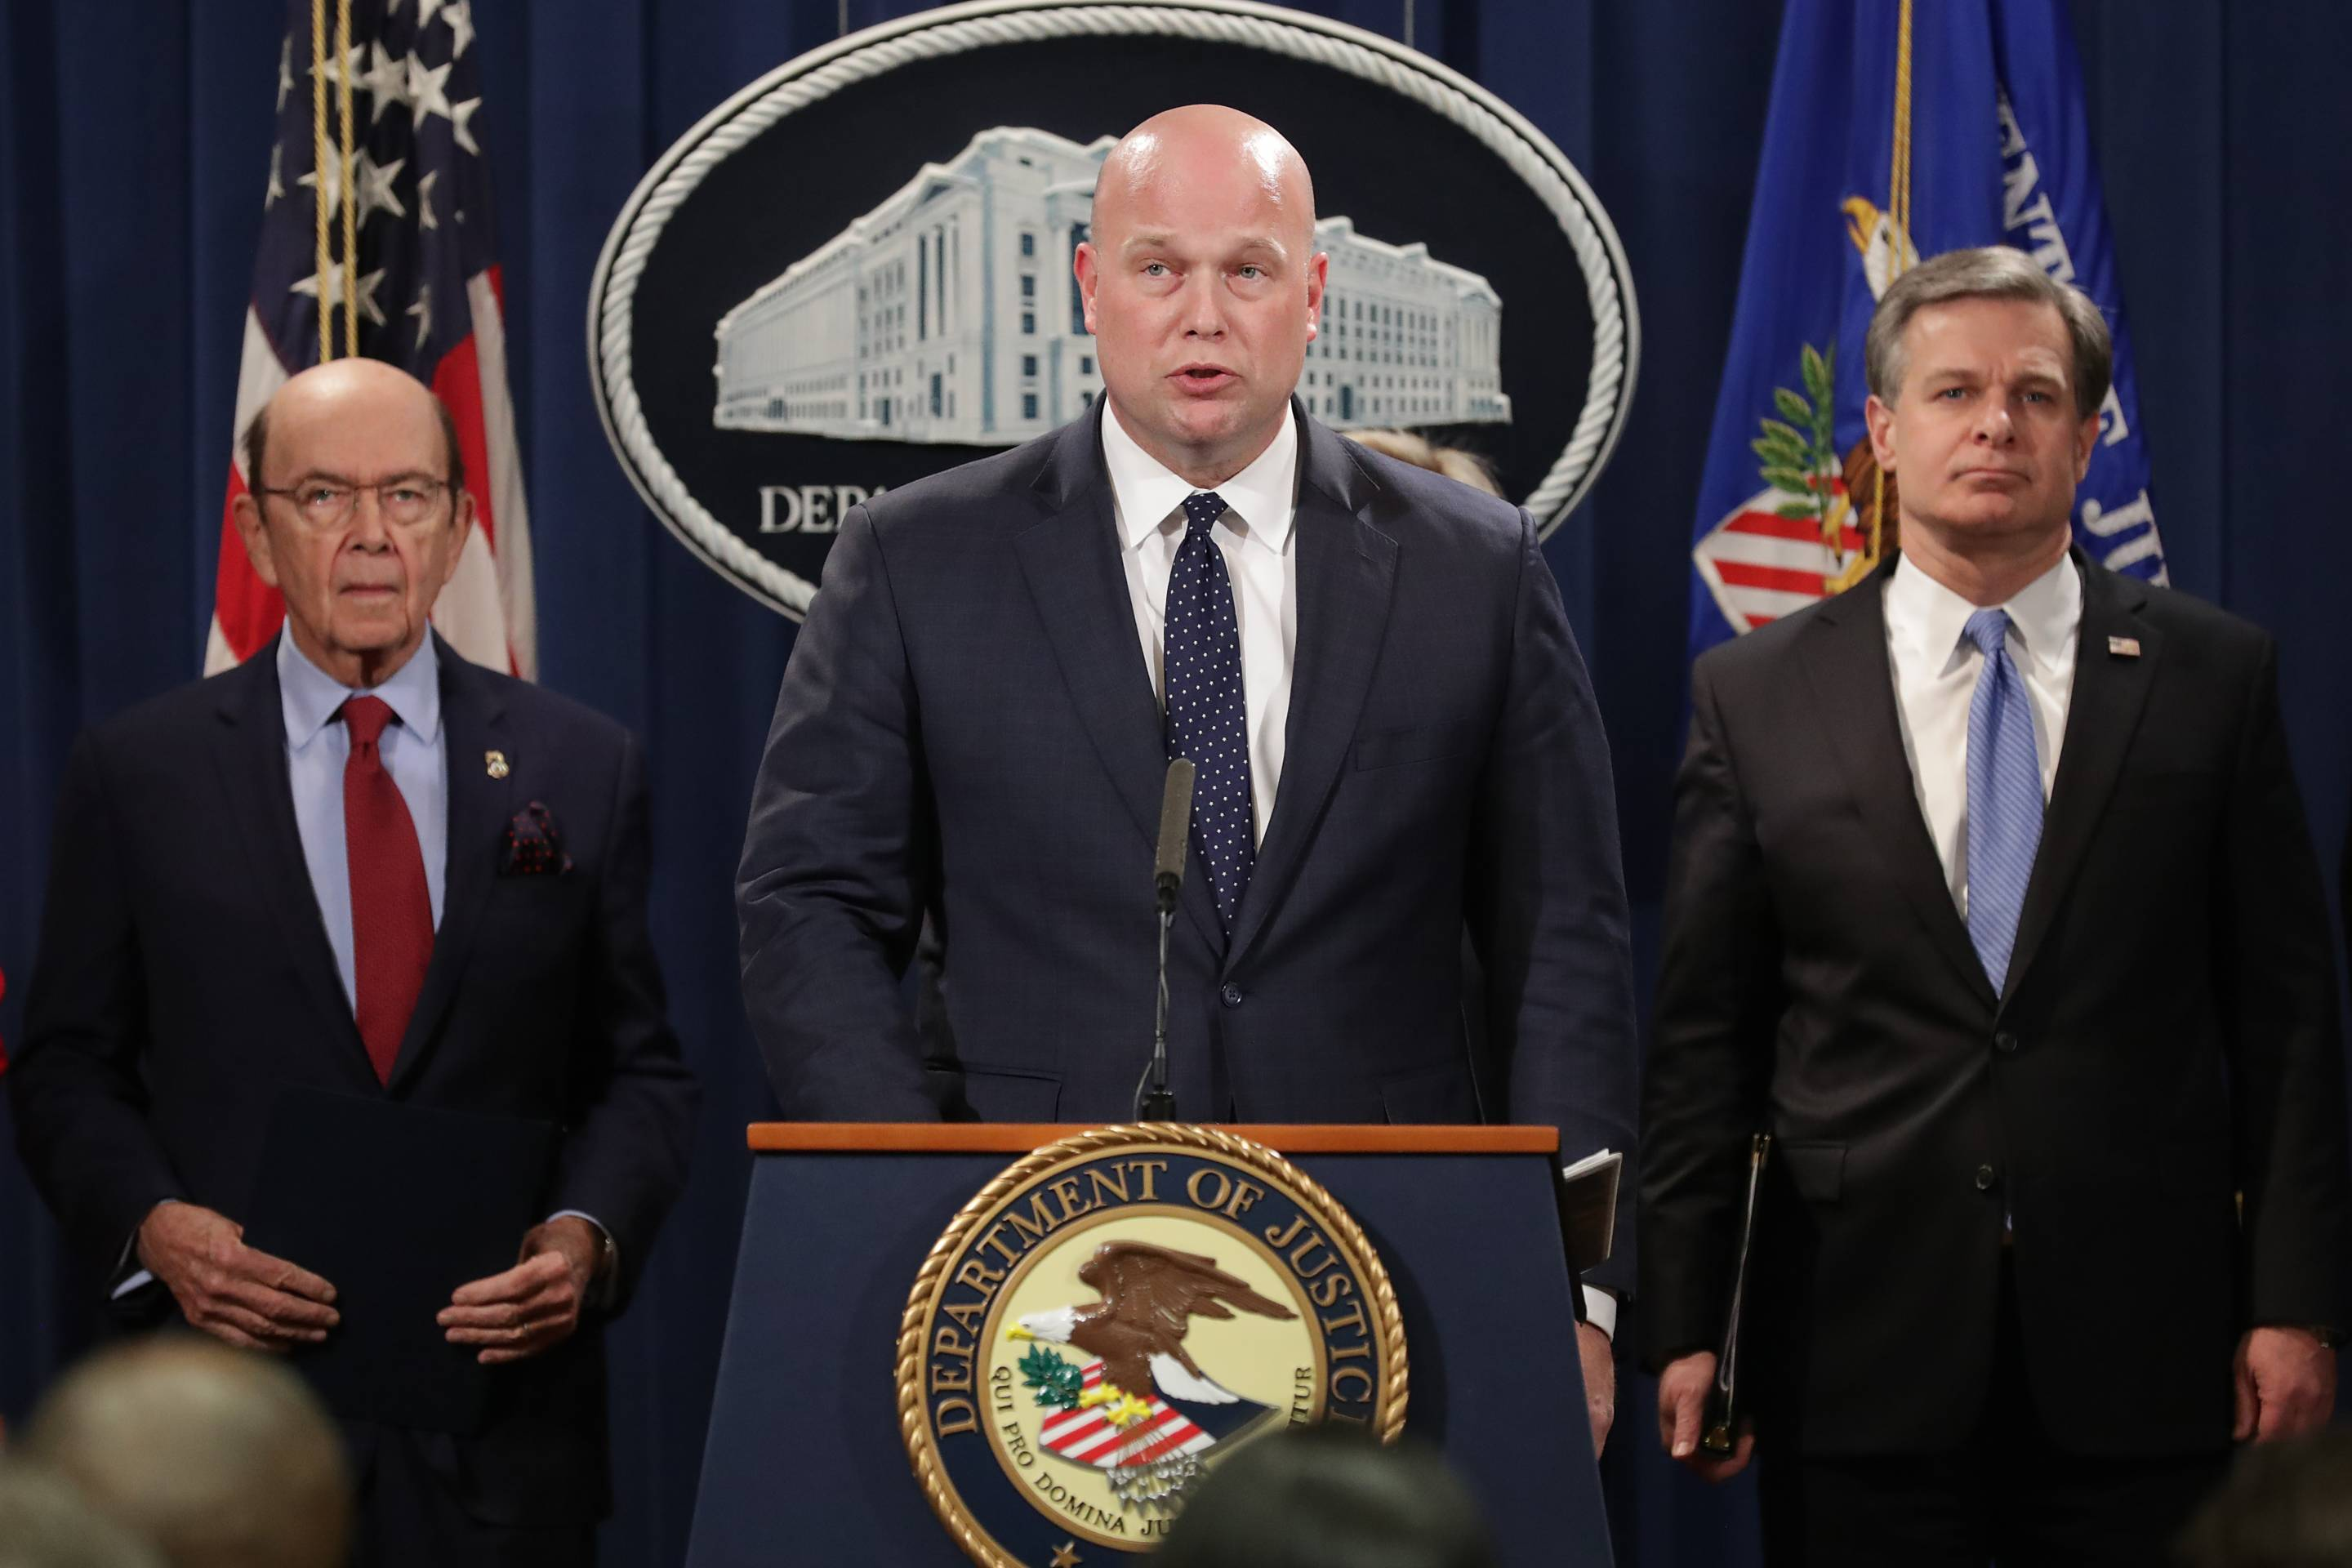 Acting Attorney General Matthew Whitaker Holds News Conference To Announce A Law Enforcement Against China